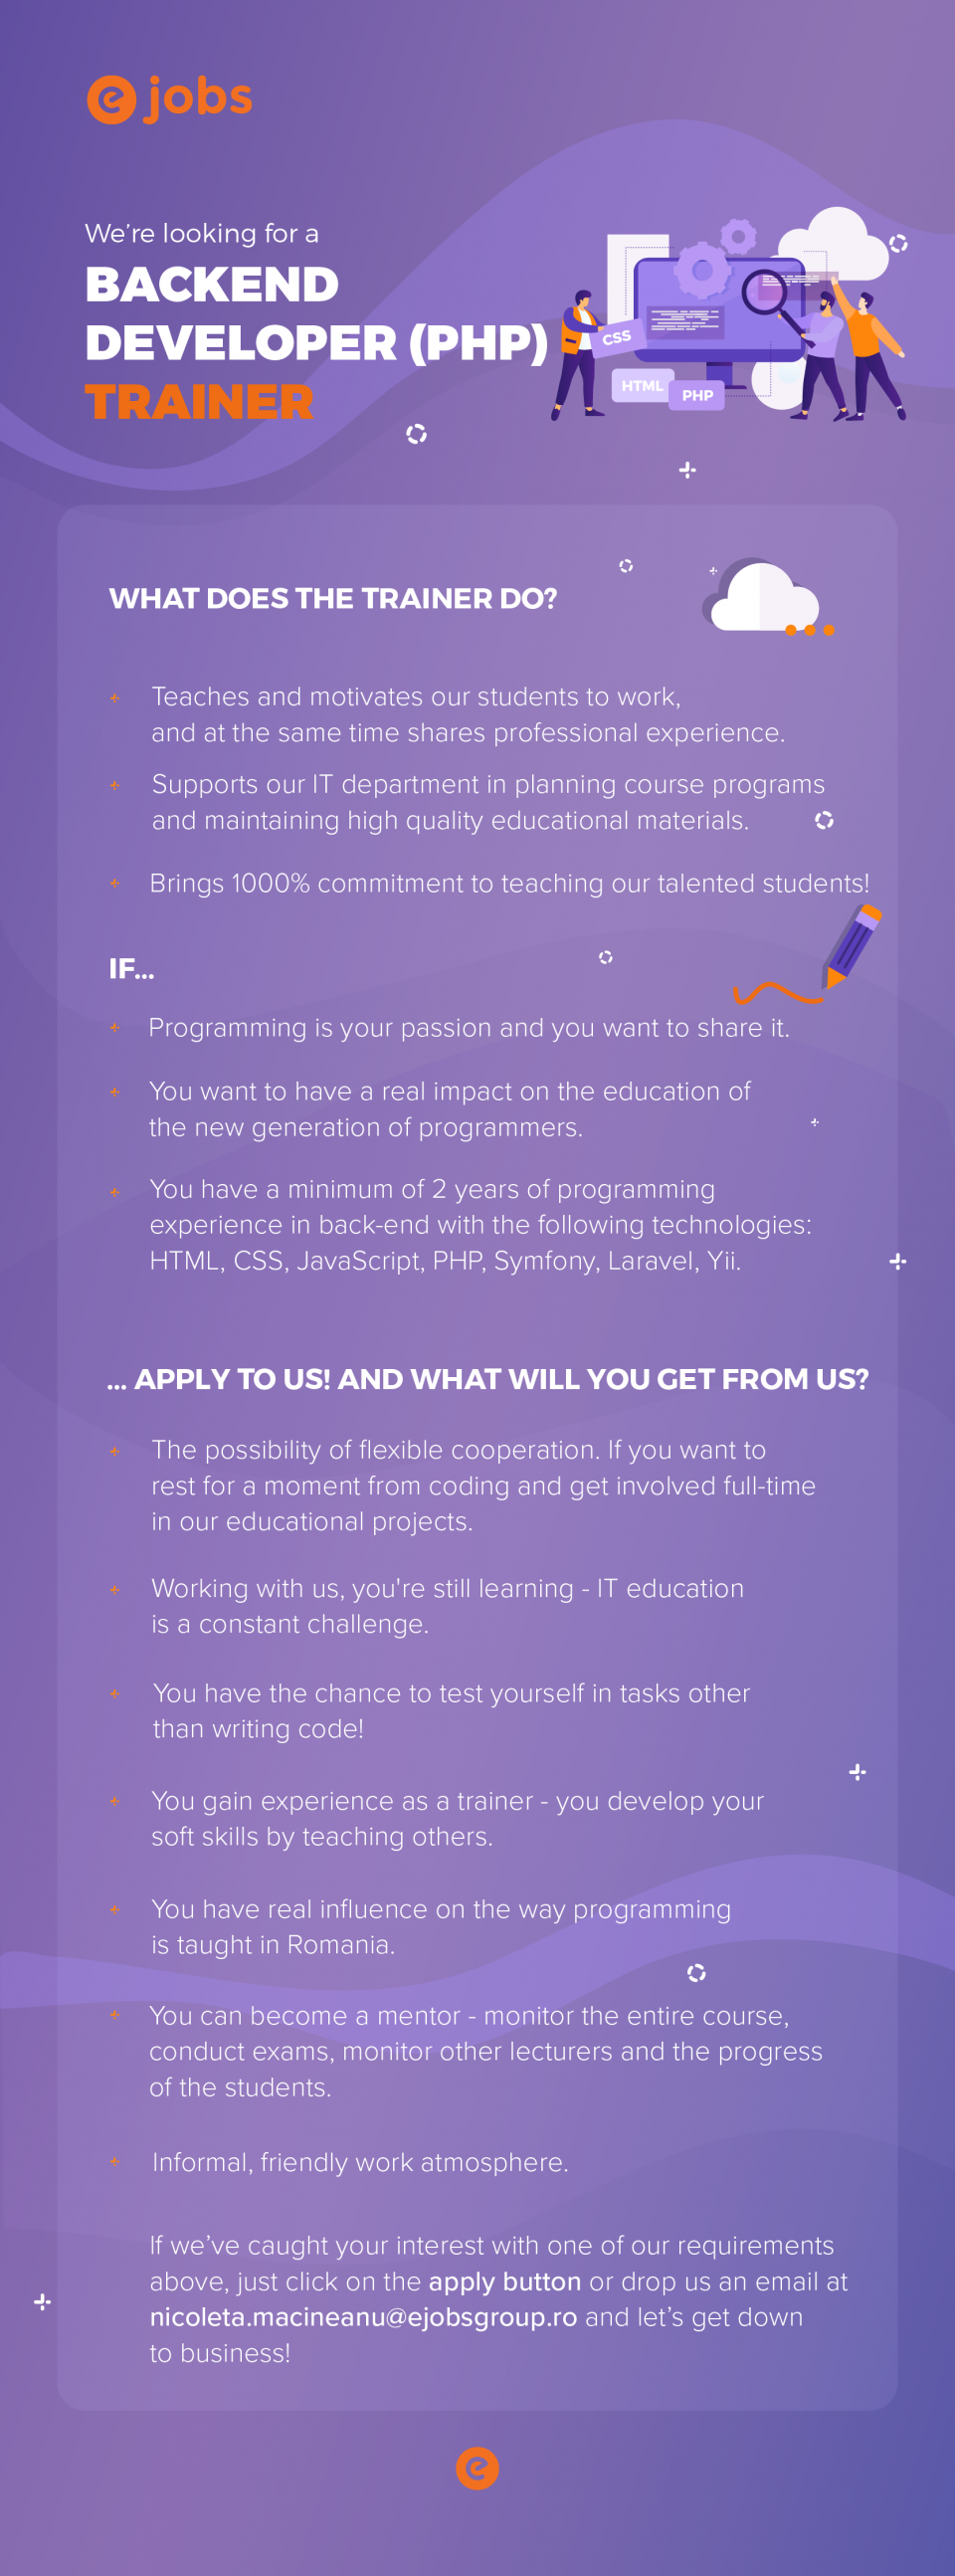 eJobs deschide academie de programare, numită CodersLab, cu specializare în front end development și back end development. Avem nevoie de un trainer talentat de PHP care să aibă experiență cu Symfony pentru a preda adulților care se înscriu la cursurile noastre. We're looking for a Backend Developer (PHP) - Trainer  What does the trainer do?  Teaches and motivates our students to work, and at the same time shares professional experience. Supports our IT department in planning course programs and maintaining high quality educational materials. Bringing 1000% commitment to teaching our talented Students! If...  Programming is your passion and you want to share it You want to have a real impact on the education of the new generation of programmers You have a minimum of 2 years of programming experience in back-end with the following technologies: HTML, CSS, JavaScript, PHP, Symfony, Laravel, Yii. ... apply to us! And what will you get from us?  The possibility of flexible cooperation. If you want to rest for a moment from coding and get involved full-time in our educational projects. Working with us, you're still learning - IT education is a constant challenge. You have the chance to test yourself in tasks other than writing code! You gain experience as a trainer - you develop your soft skills by teaching others, and we help you with this. You have real influence on the way programming is taught in Romania. You can become a mentor - monitor the entire course, conduct exams, monitor other lecturers and progress of students. Informal, friendly work atmosphere. If we've caught your interest with one of our requirements above, just click on the apply button or drop us an email at nicoleta.macineanu@ejobsgroup.ro and let's get down to business!   eJobs is the leading Romanian online recruiting platform, with over 40.000 active jobs available at all times, posted by top companies. More than 3.8 million professionals are registered users, making eJobs the most relevant databa